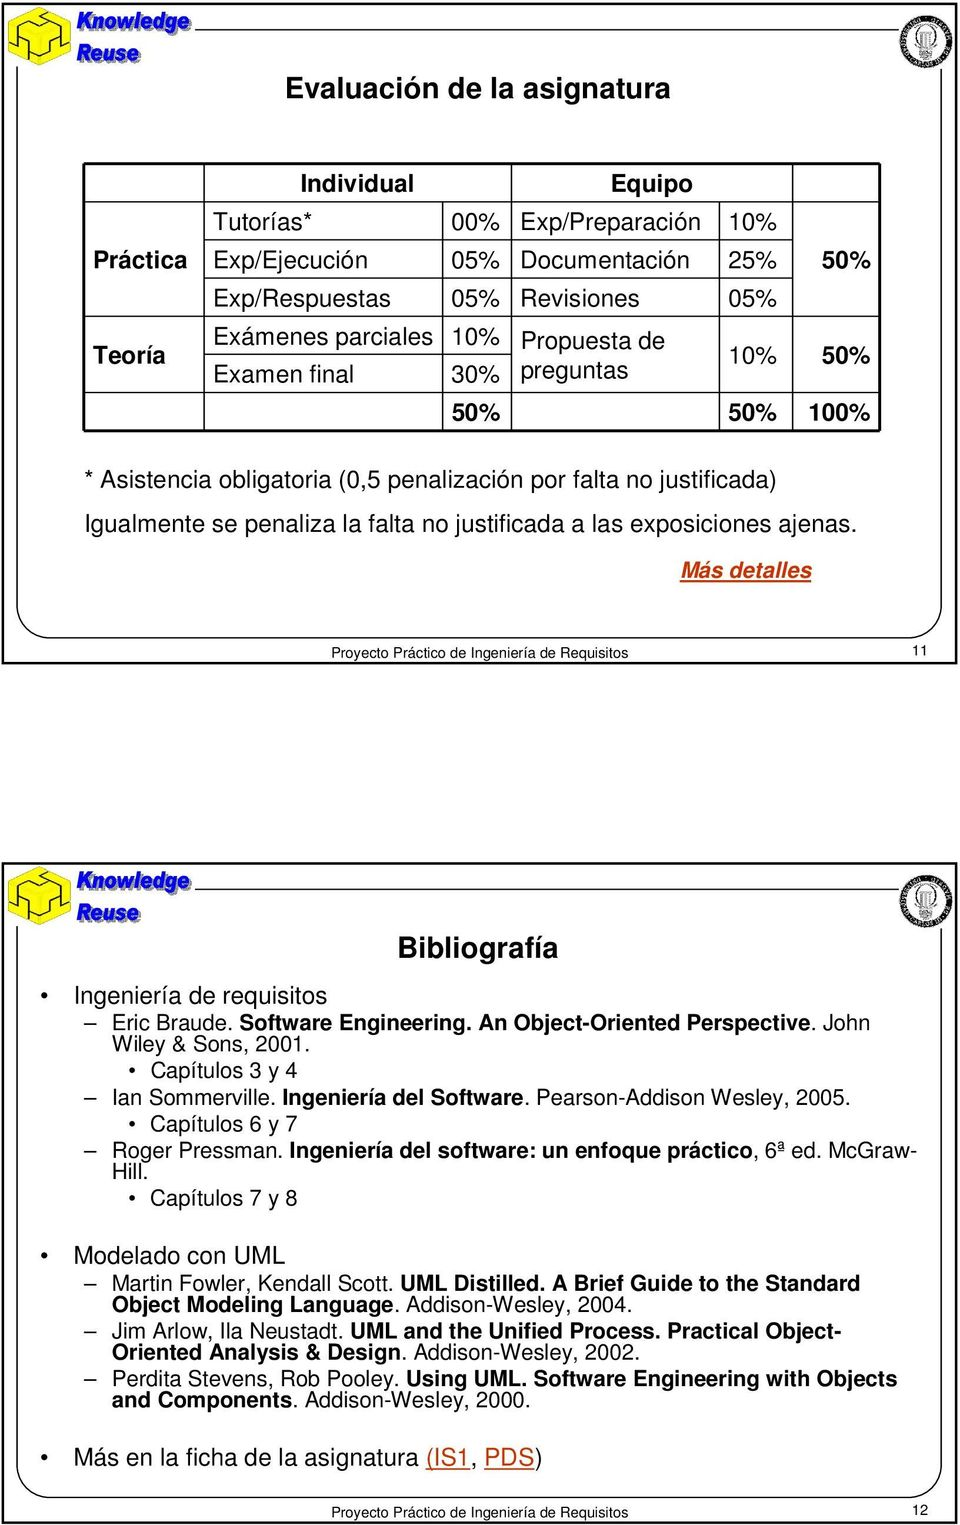 ajenas. Más detalles 11 Bibliografía Ingeniería de requisitos Eric Braude. Software Engineering. An Object-Oriented Perspective. John Wiley & Sons, 2001. Capítulos 3 y 4 Ian Sommerville.